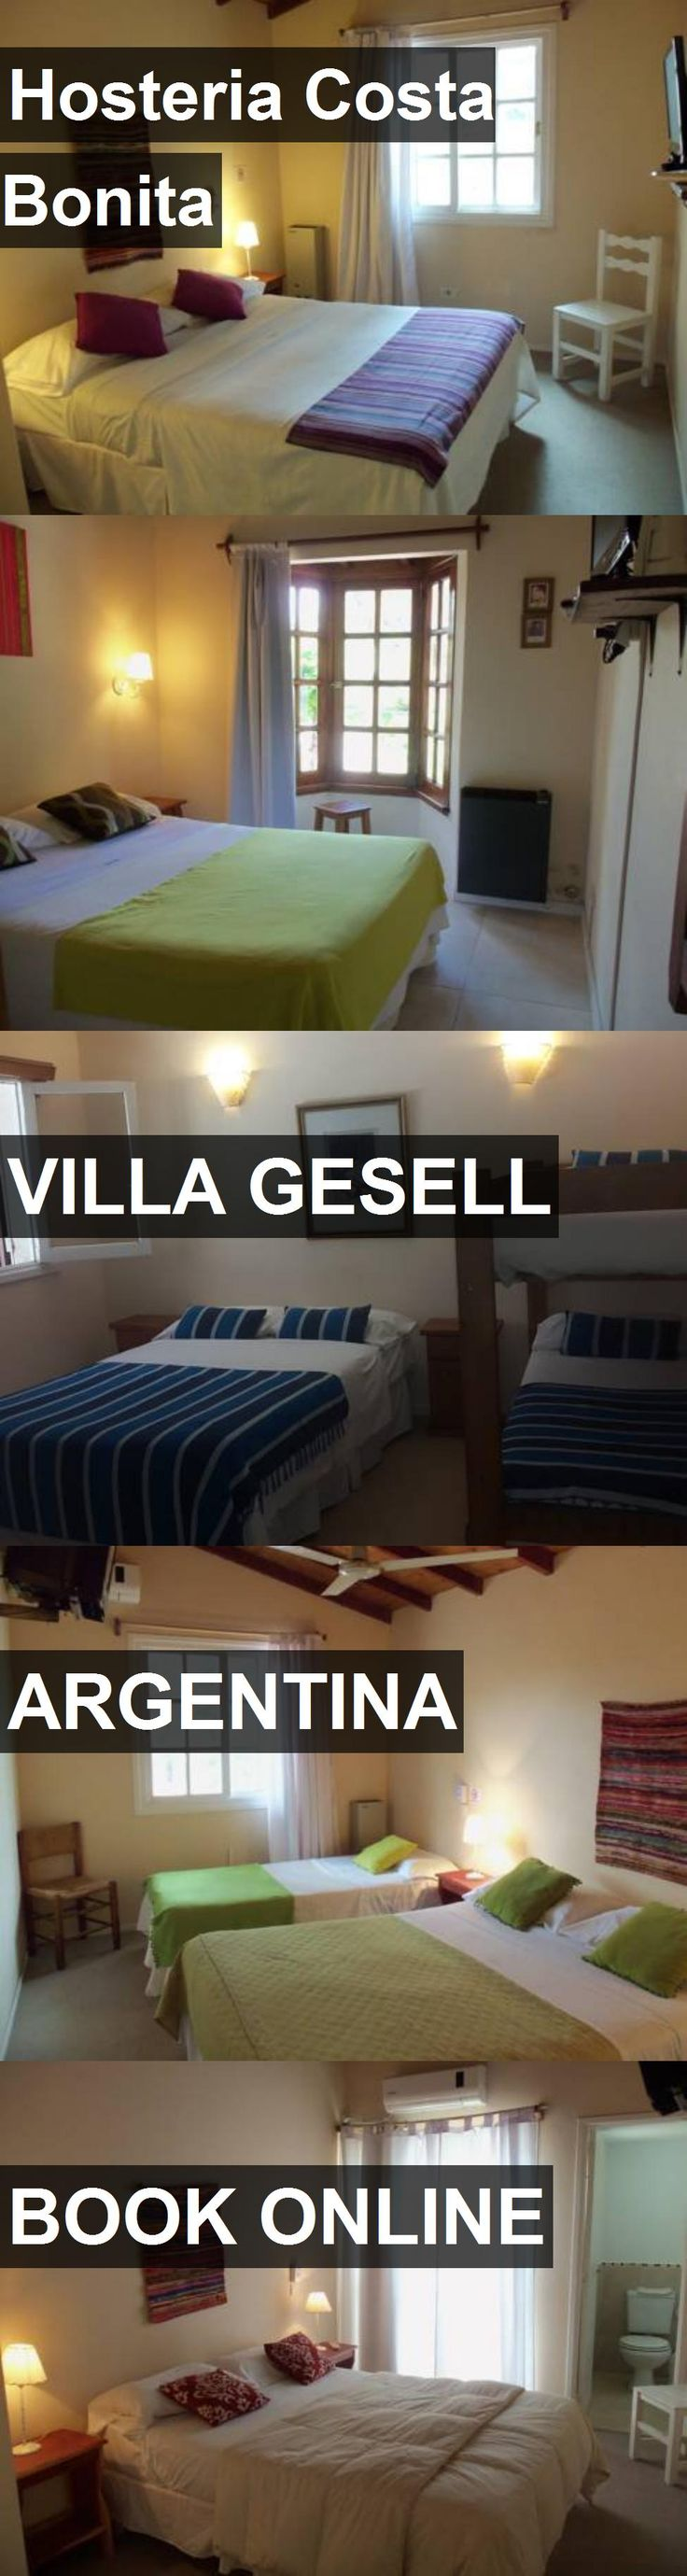 Hotel Hosteria Costa Bonita in Villa Gesell, Argentina. For more information, photos, reviews and best prices please follow the link. #Argentina #VillaGesell #travel #vacation #hotel